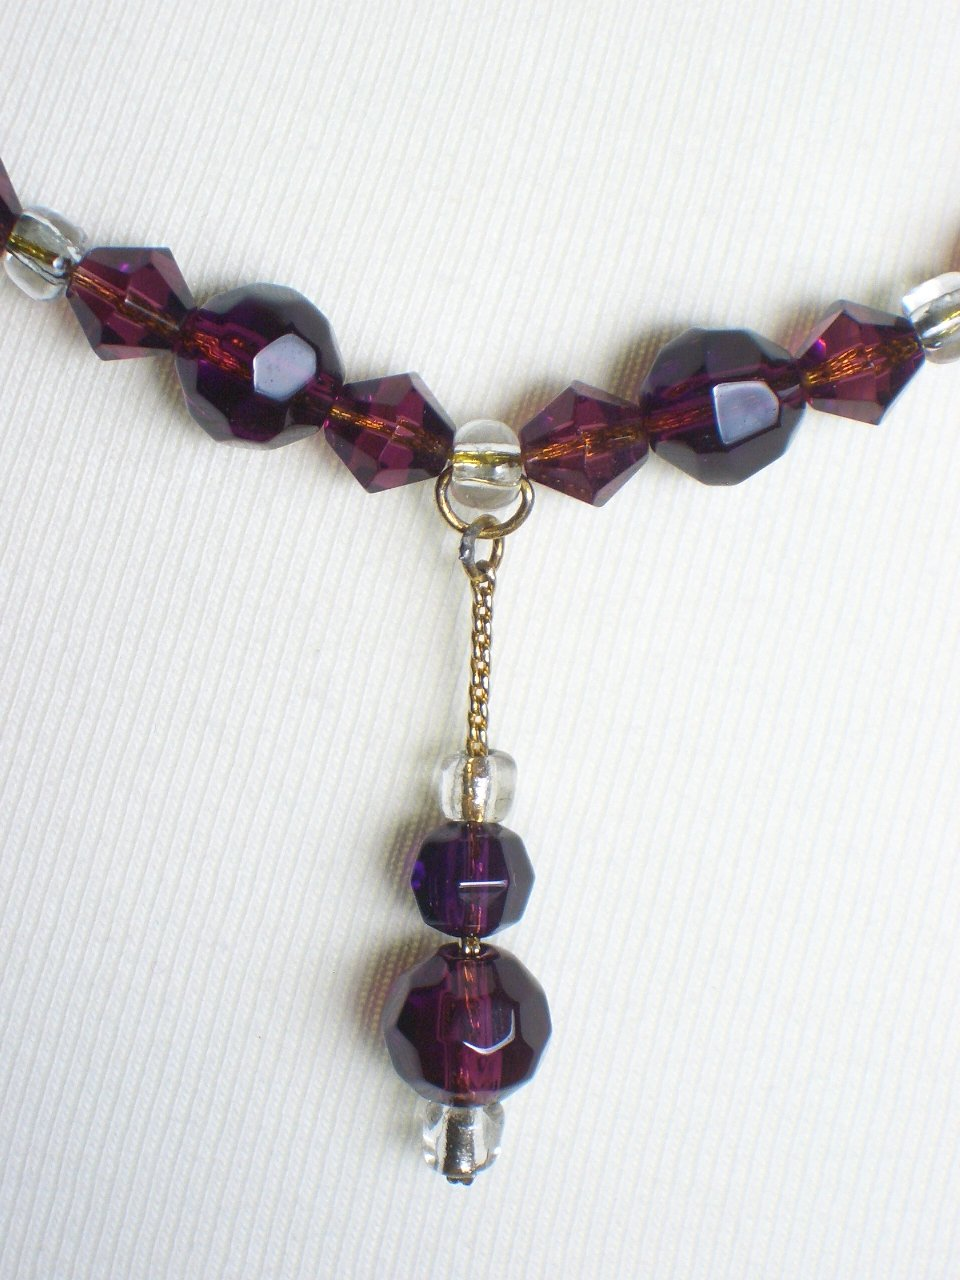 Pretty Plum Princess Necklace Clear Amethyst Purple Faceted Glass Beads Dainty Lovely Dangling Charm